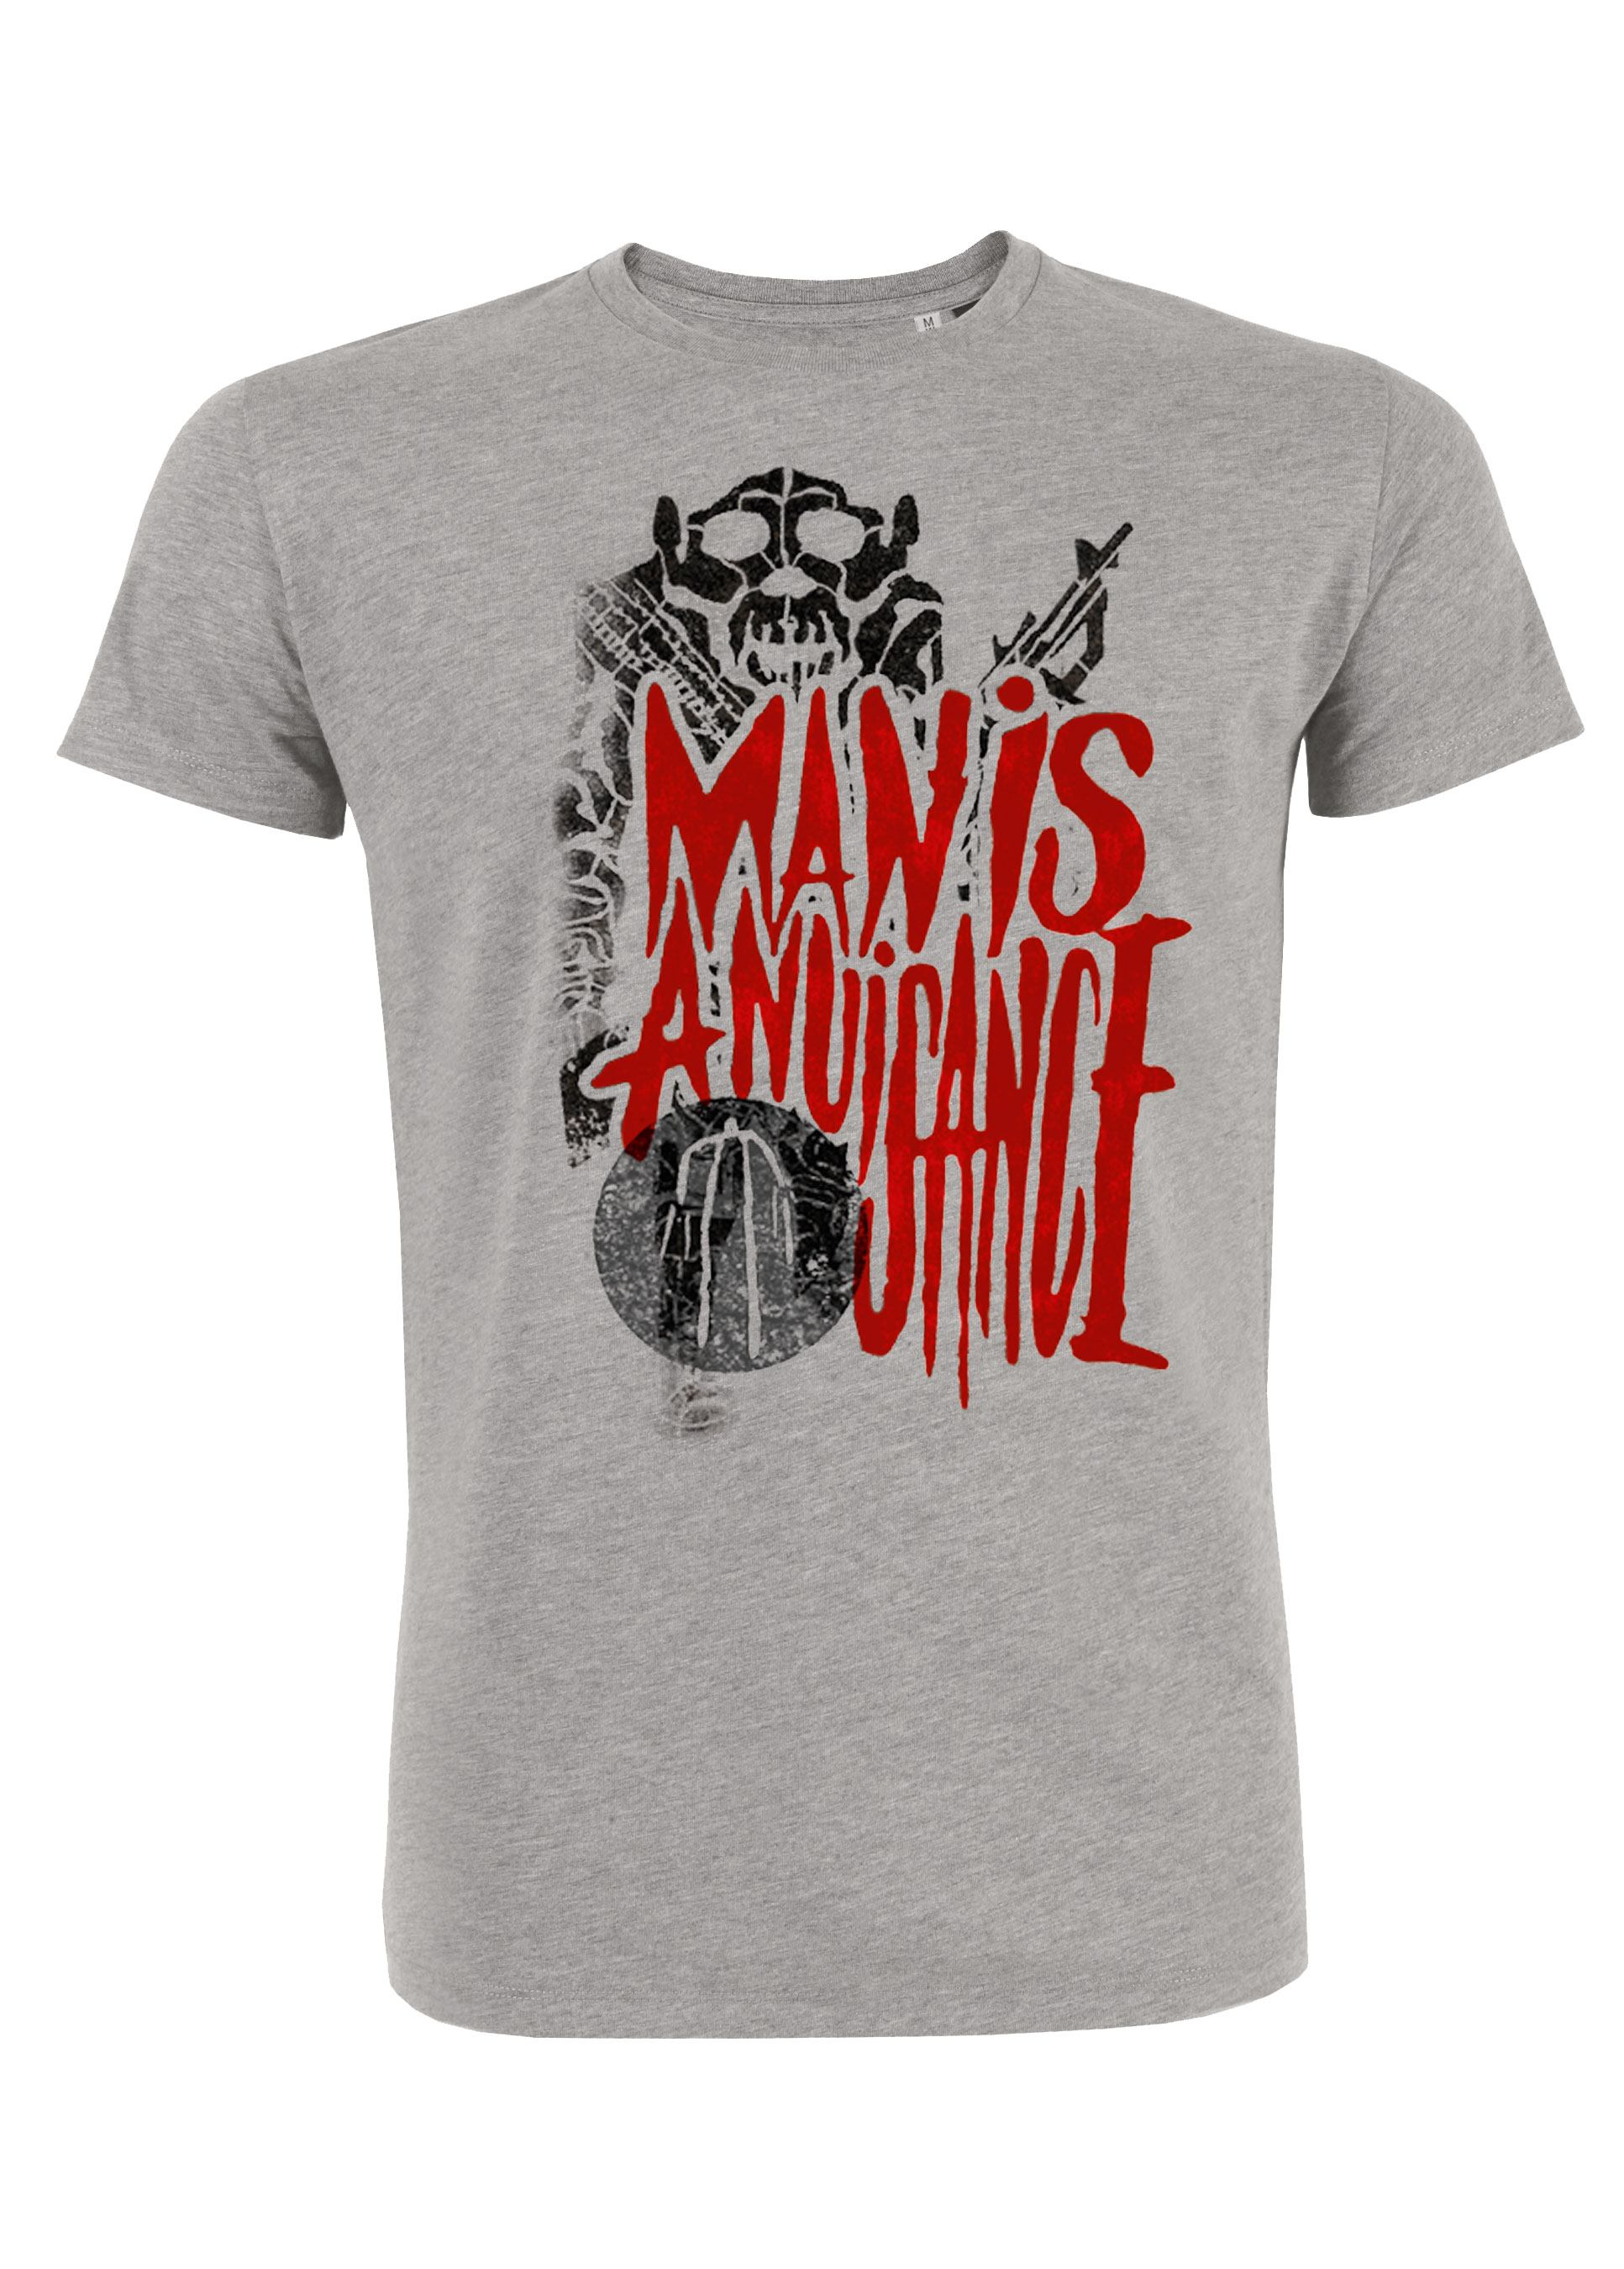 Dawn of the Planet of the Apes T-Shirt Manis Anuisance Size S